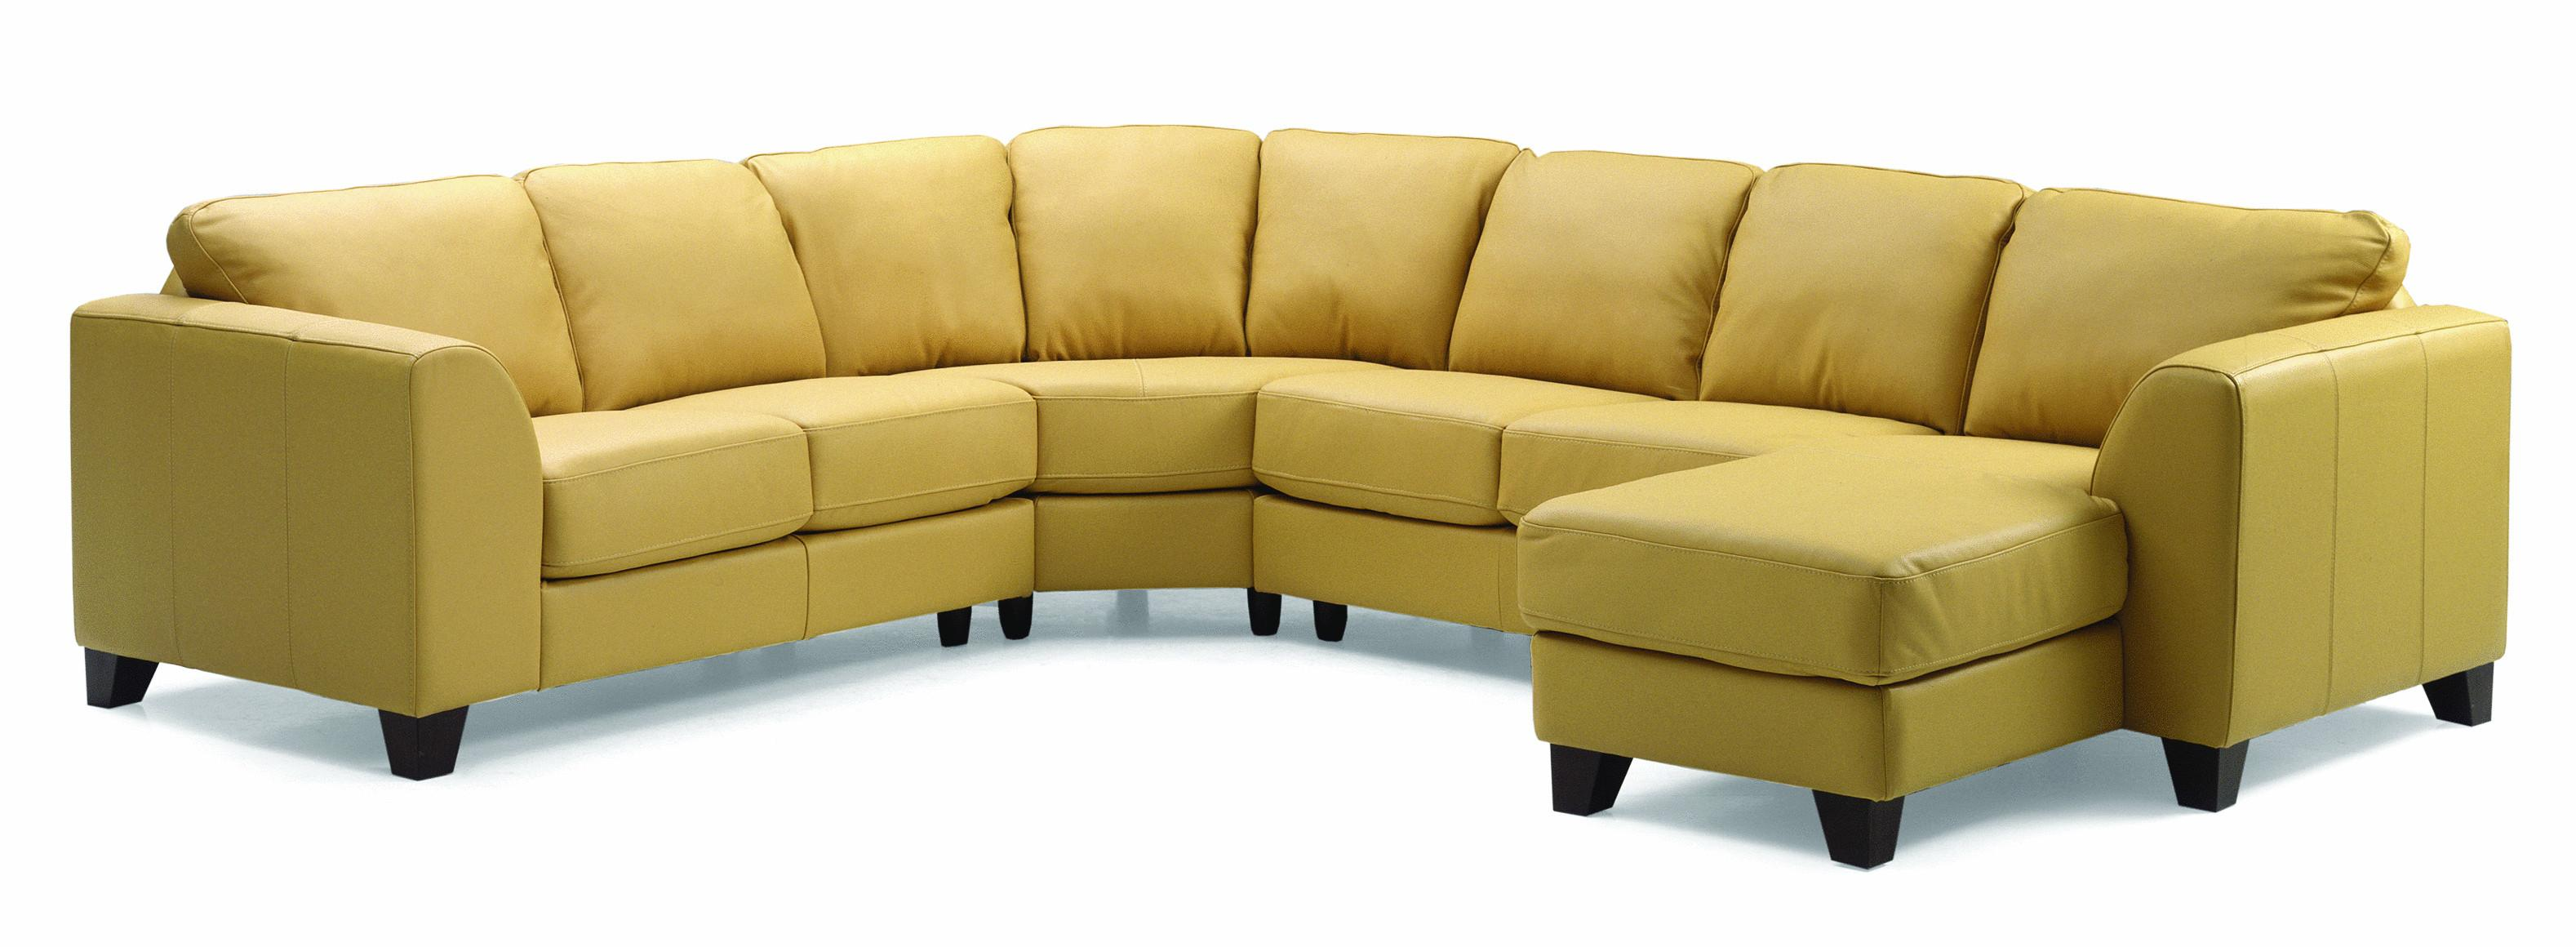 Juno Elements Chaise Sectional by Palliser at Furniture and ApplianceMart